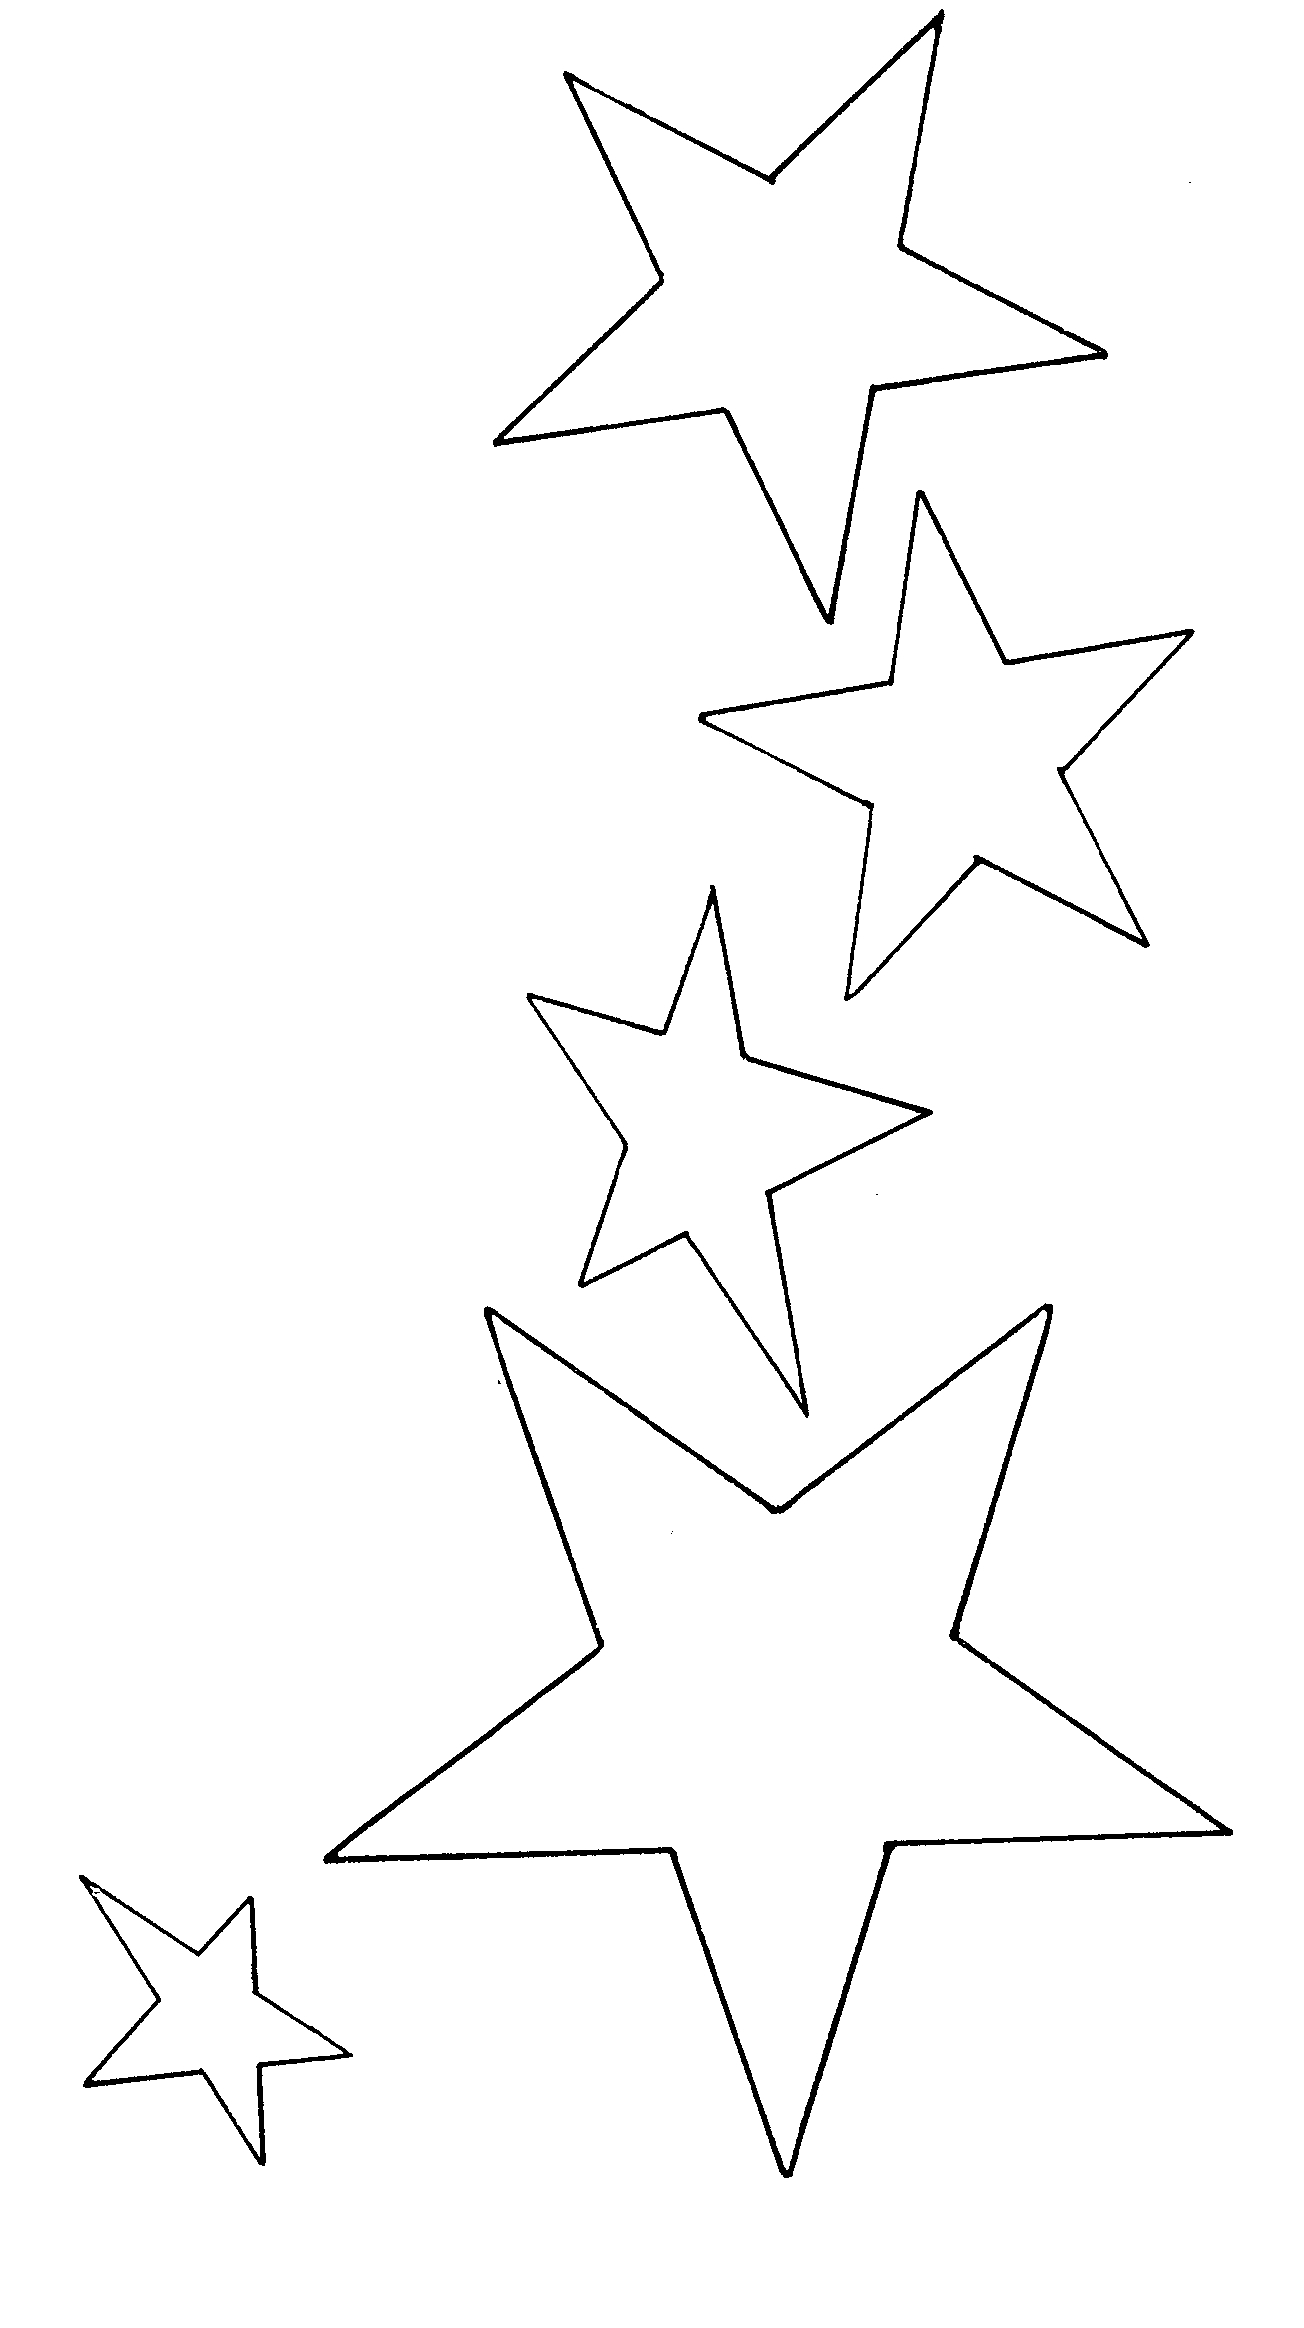 Black and white star money clipart clip art royalty free White Stars Group with 66+ items clip art royalty free